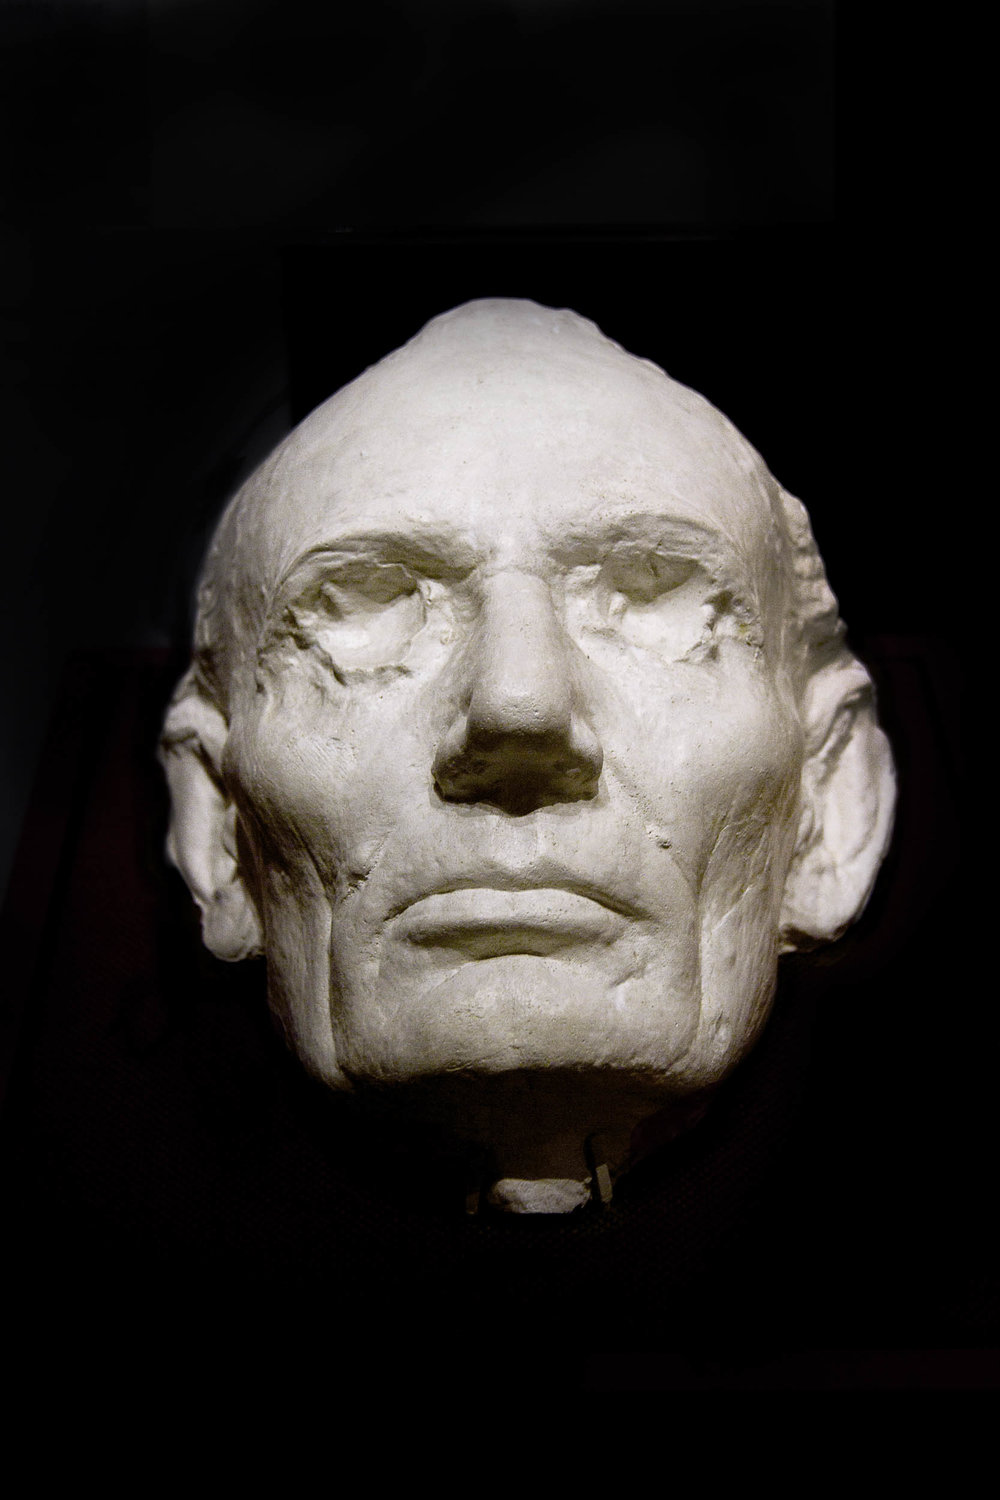 Lincoln's Life Mask 1860, Gettysburg Museum, Pennsylvania